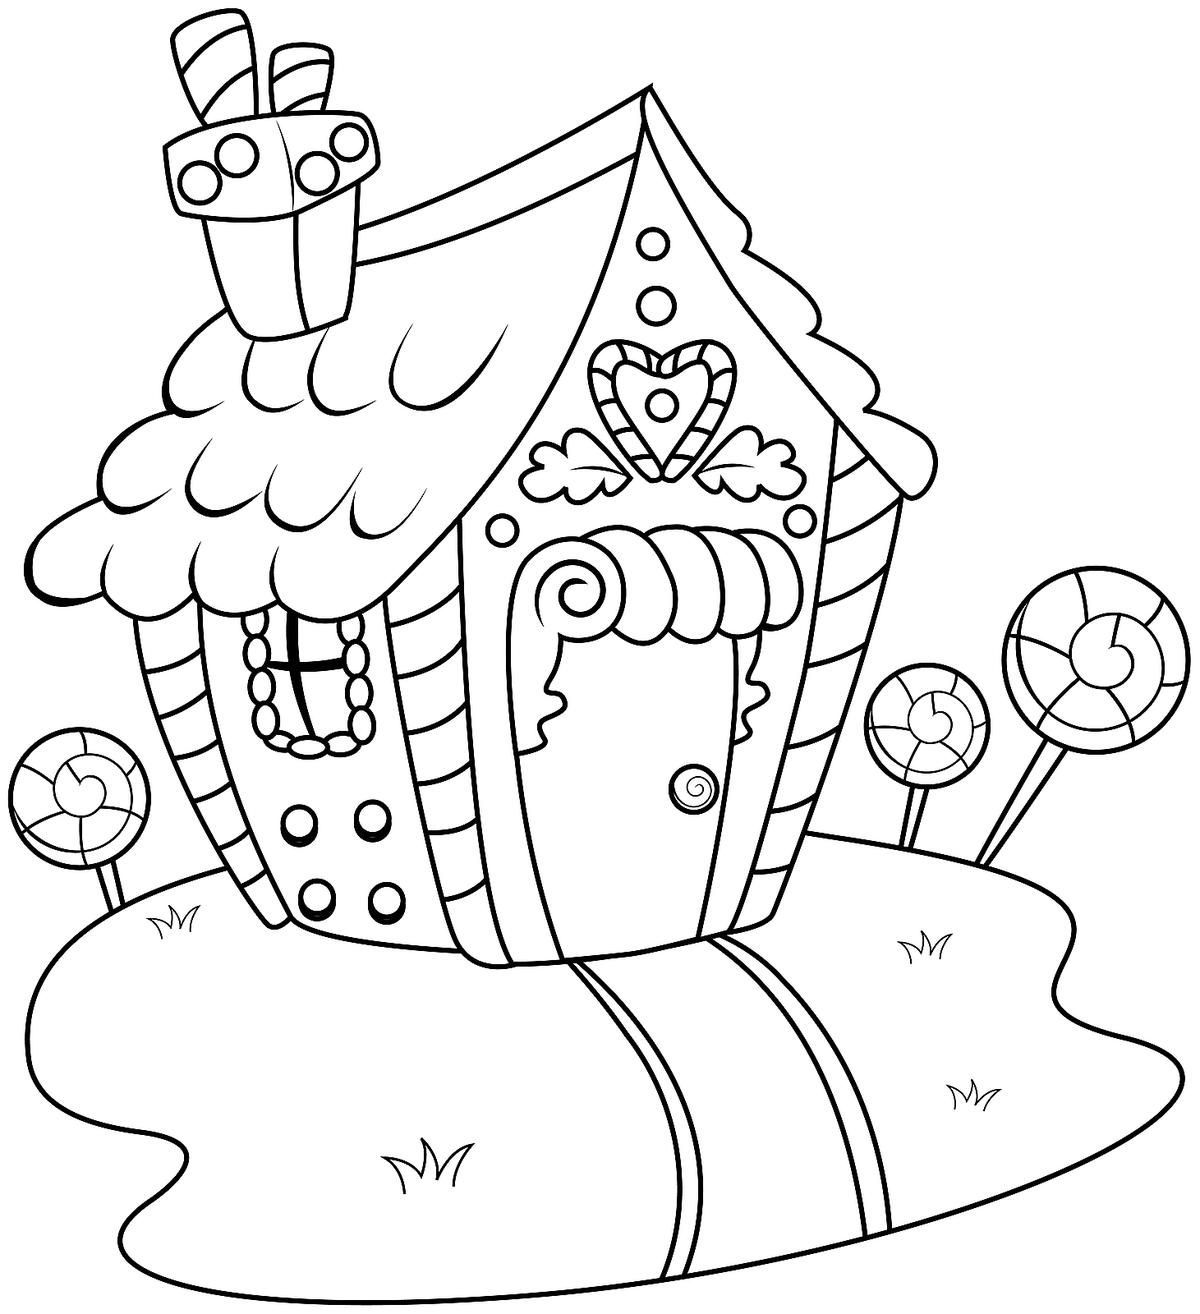 1200x1314 New Gingerbread House Coloring Pages Printable Coloring Activity